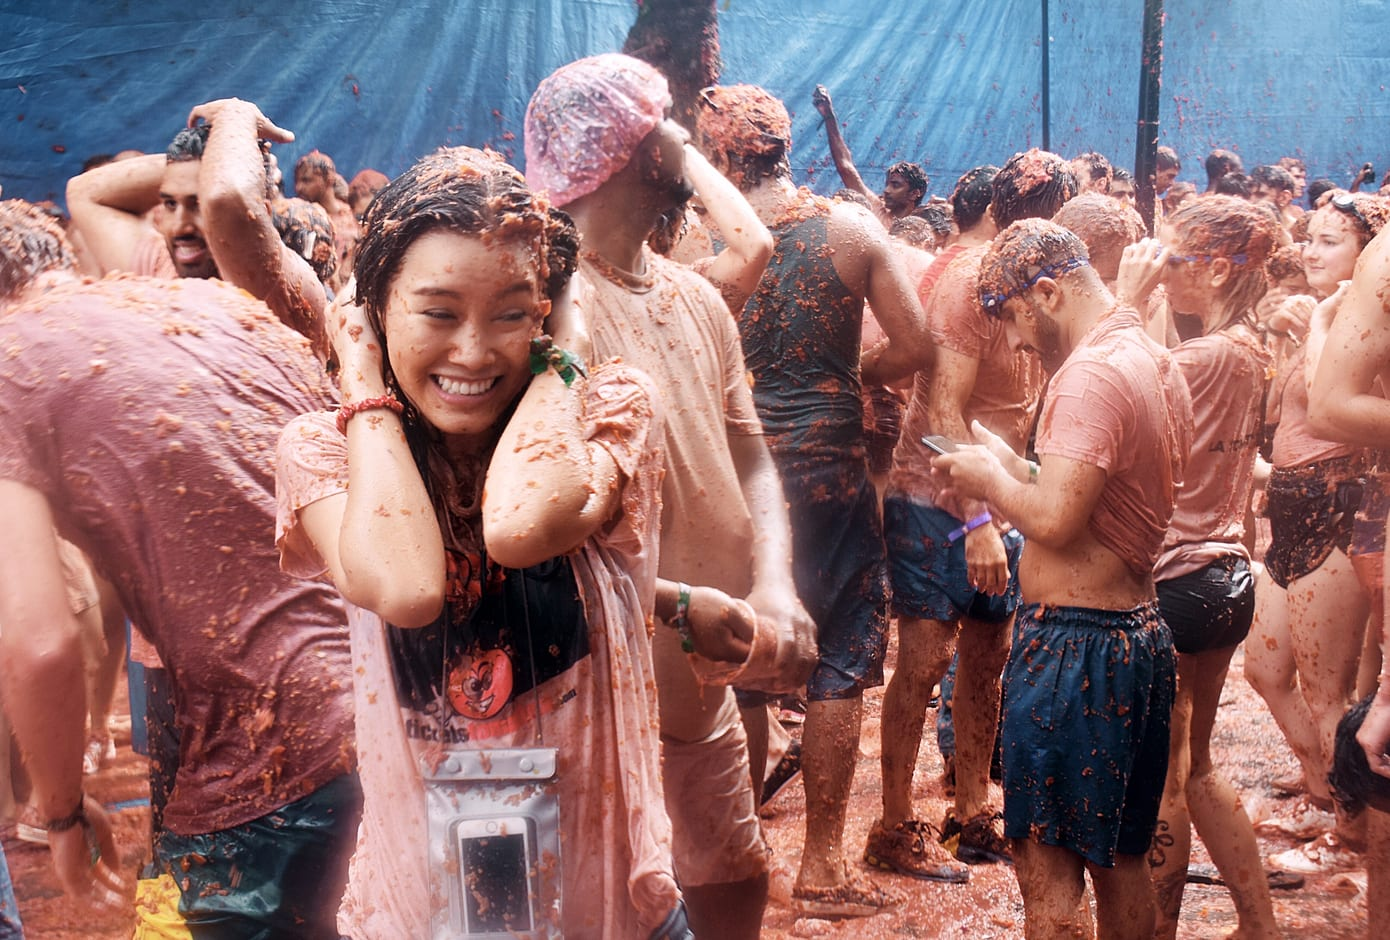 A woman covered in tomato juice during La Tomatina Festival, Bunol, Spain